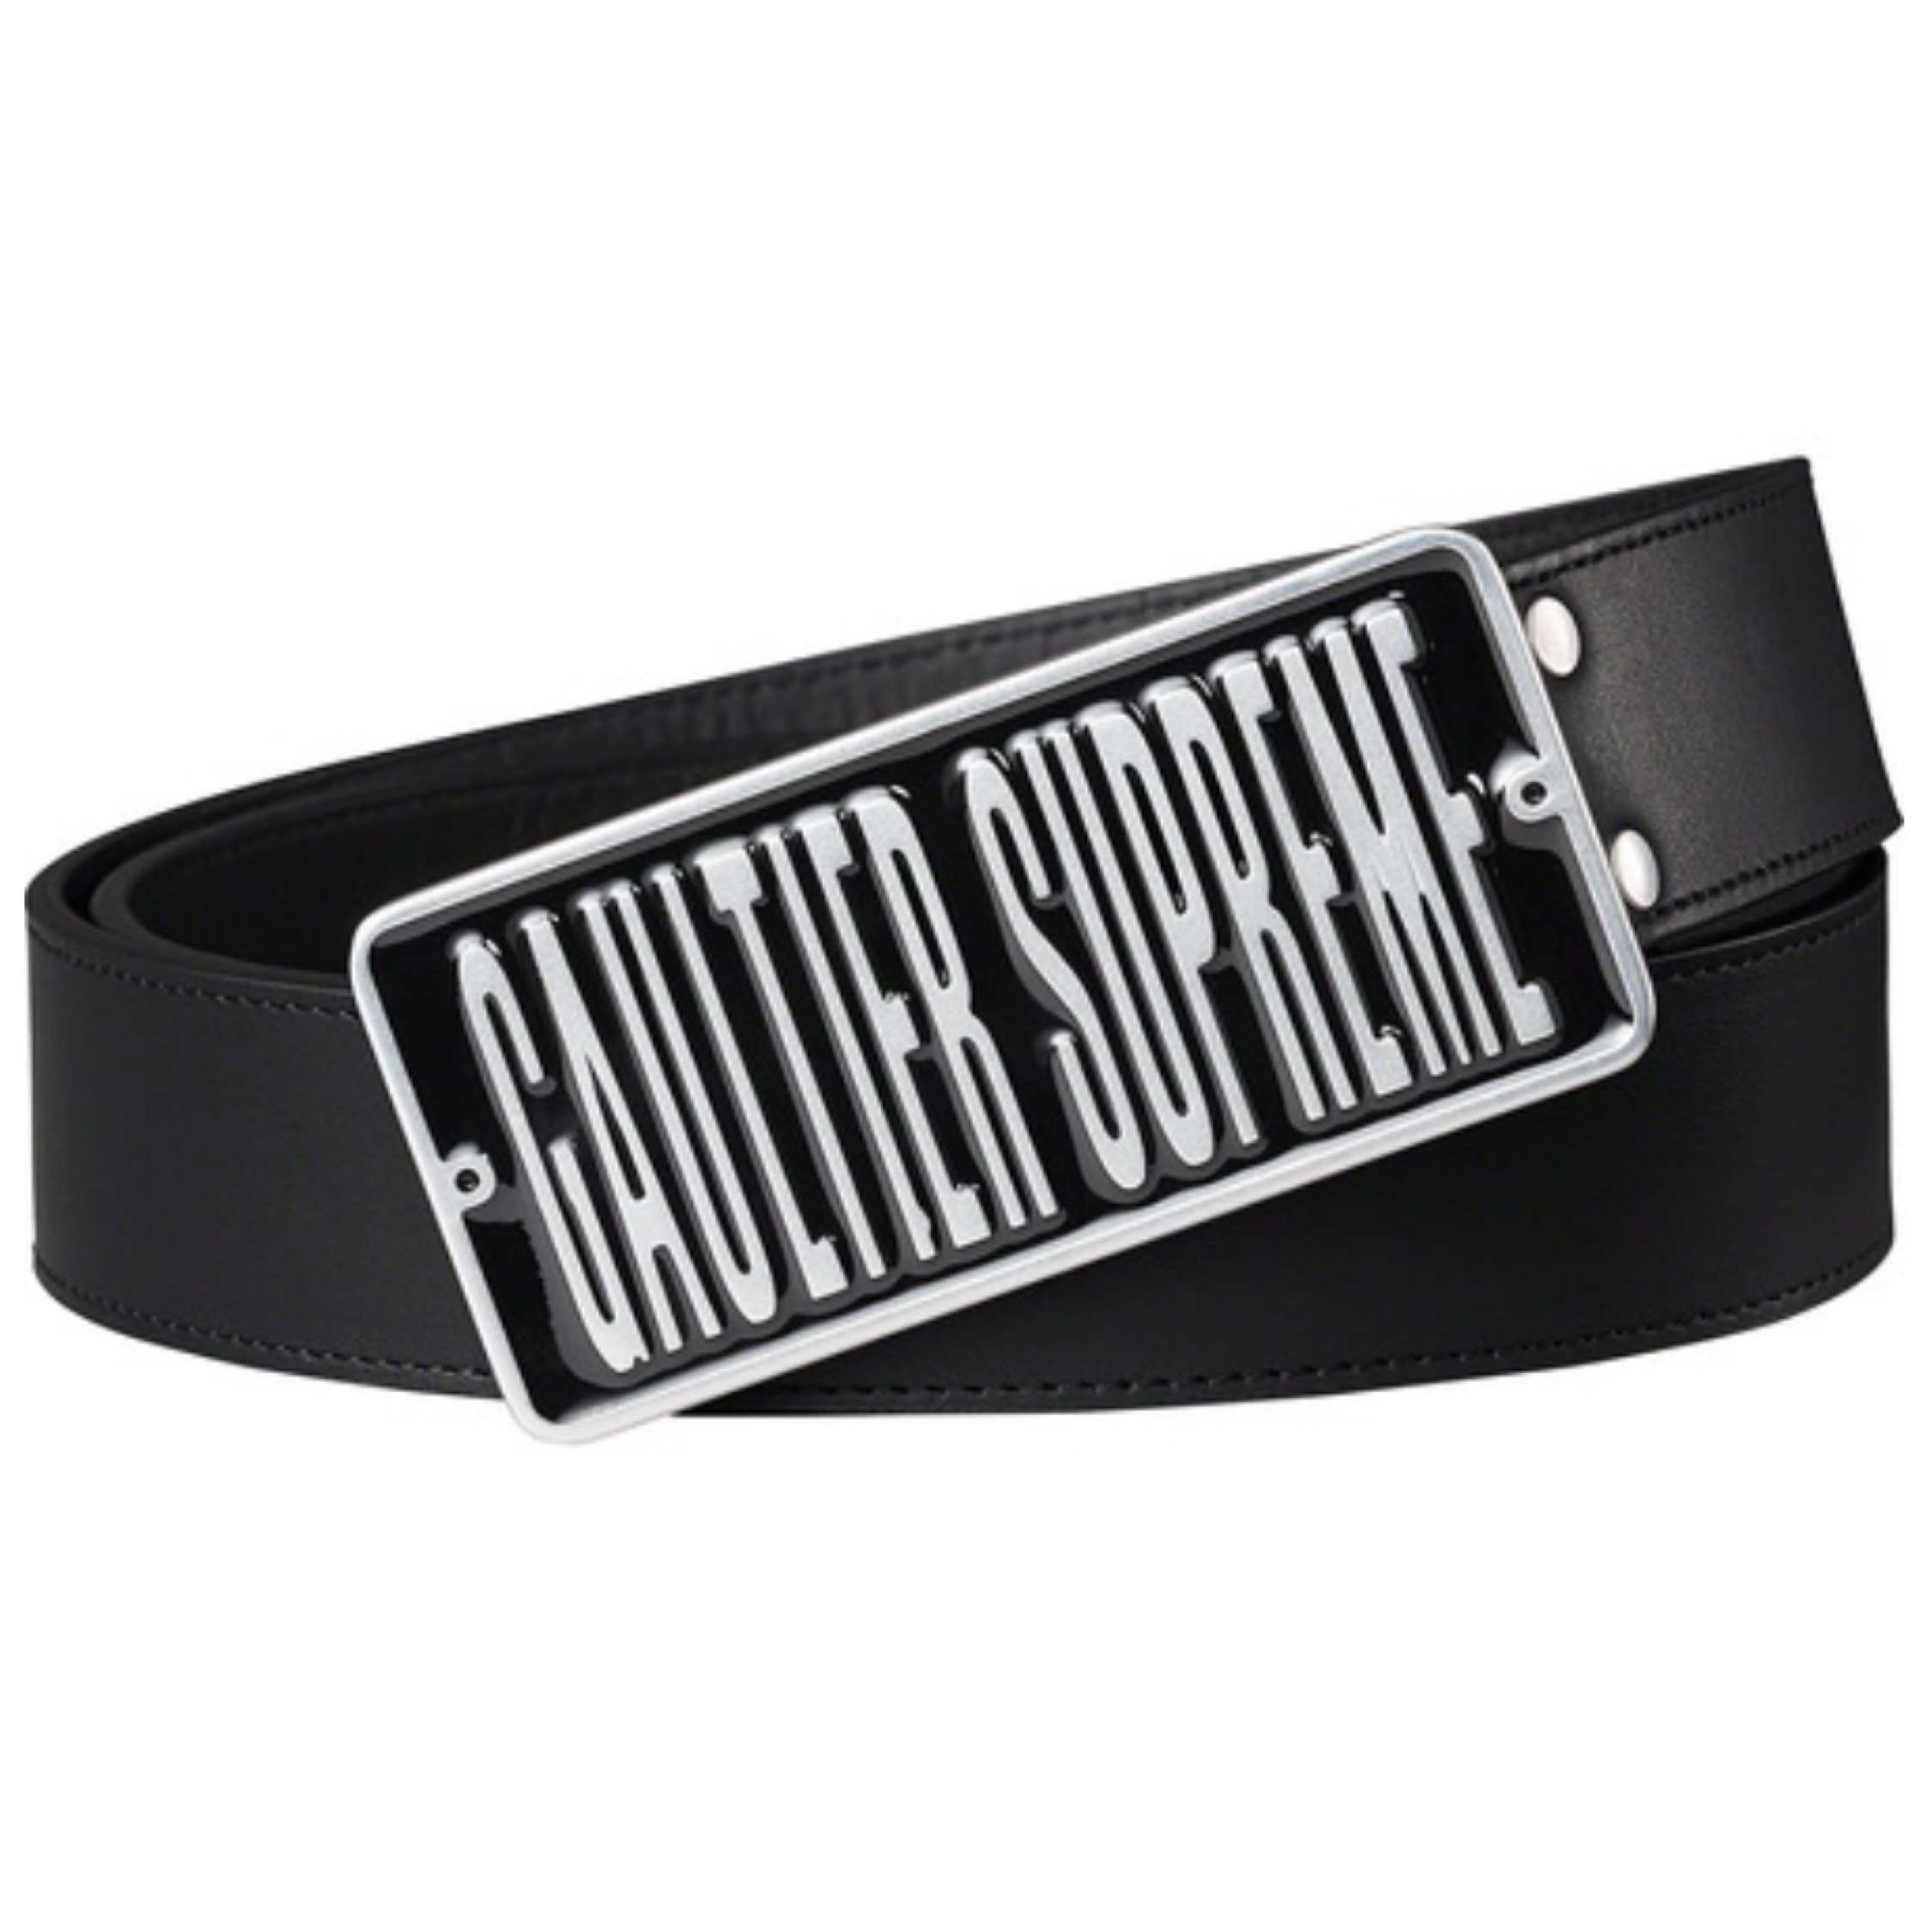 Under Retail Price Supreme Jean Paul Gaultier Belt